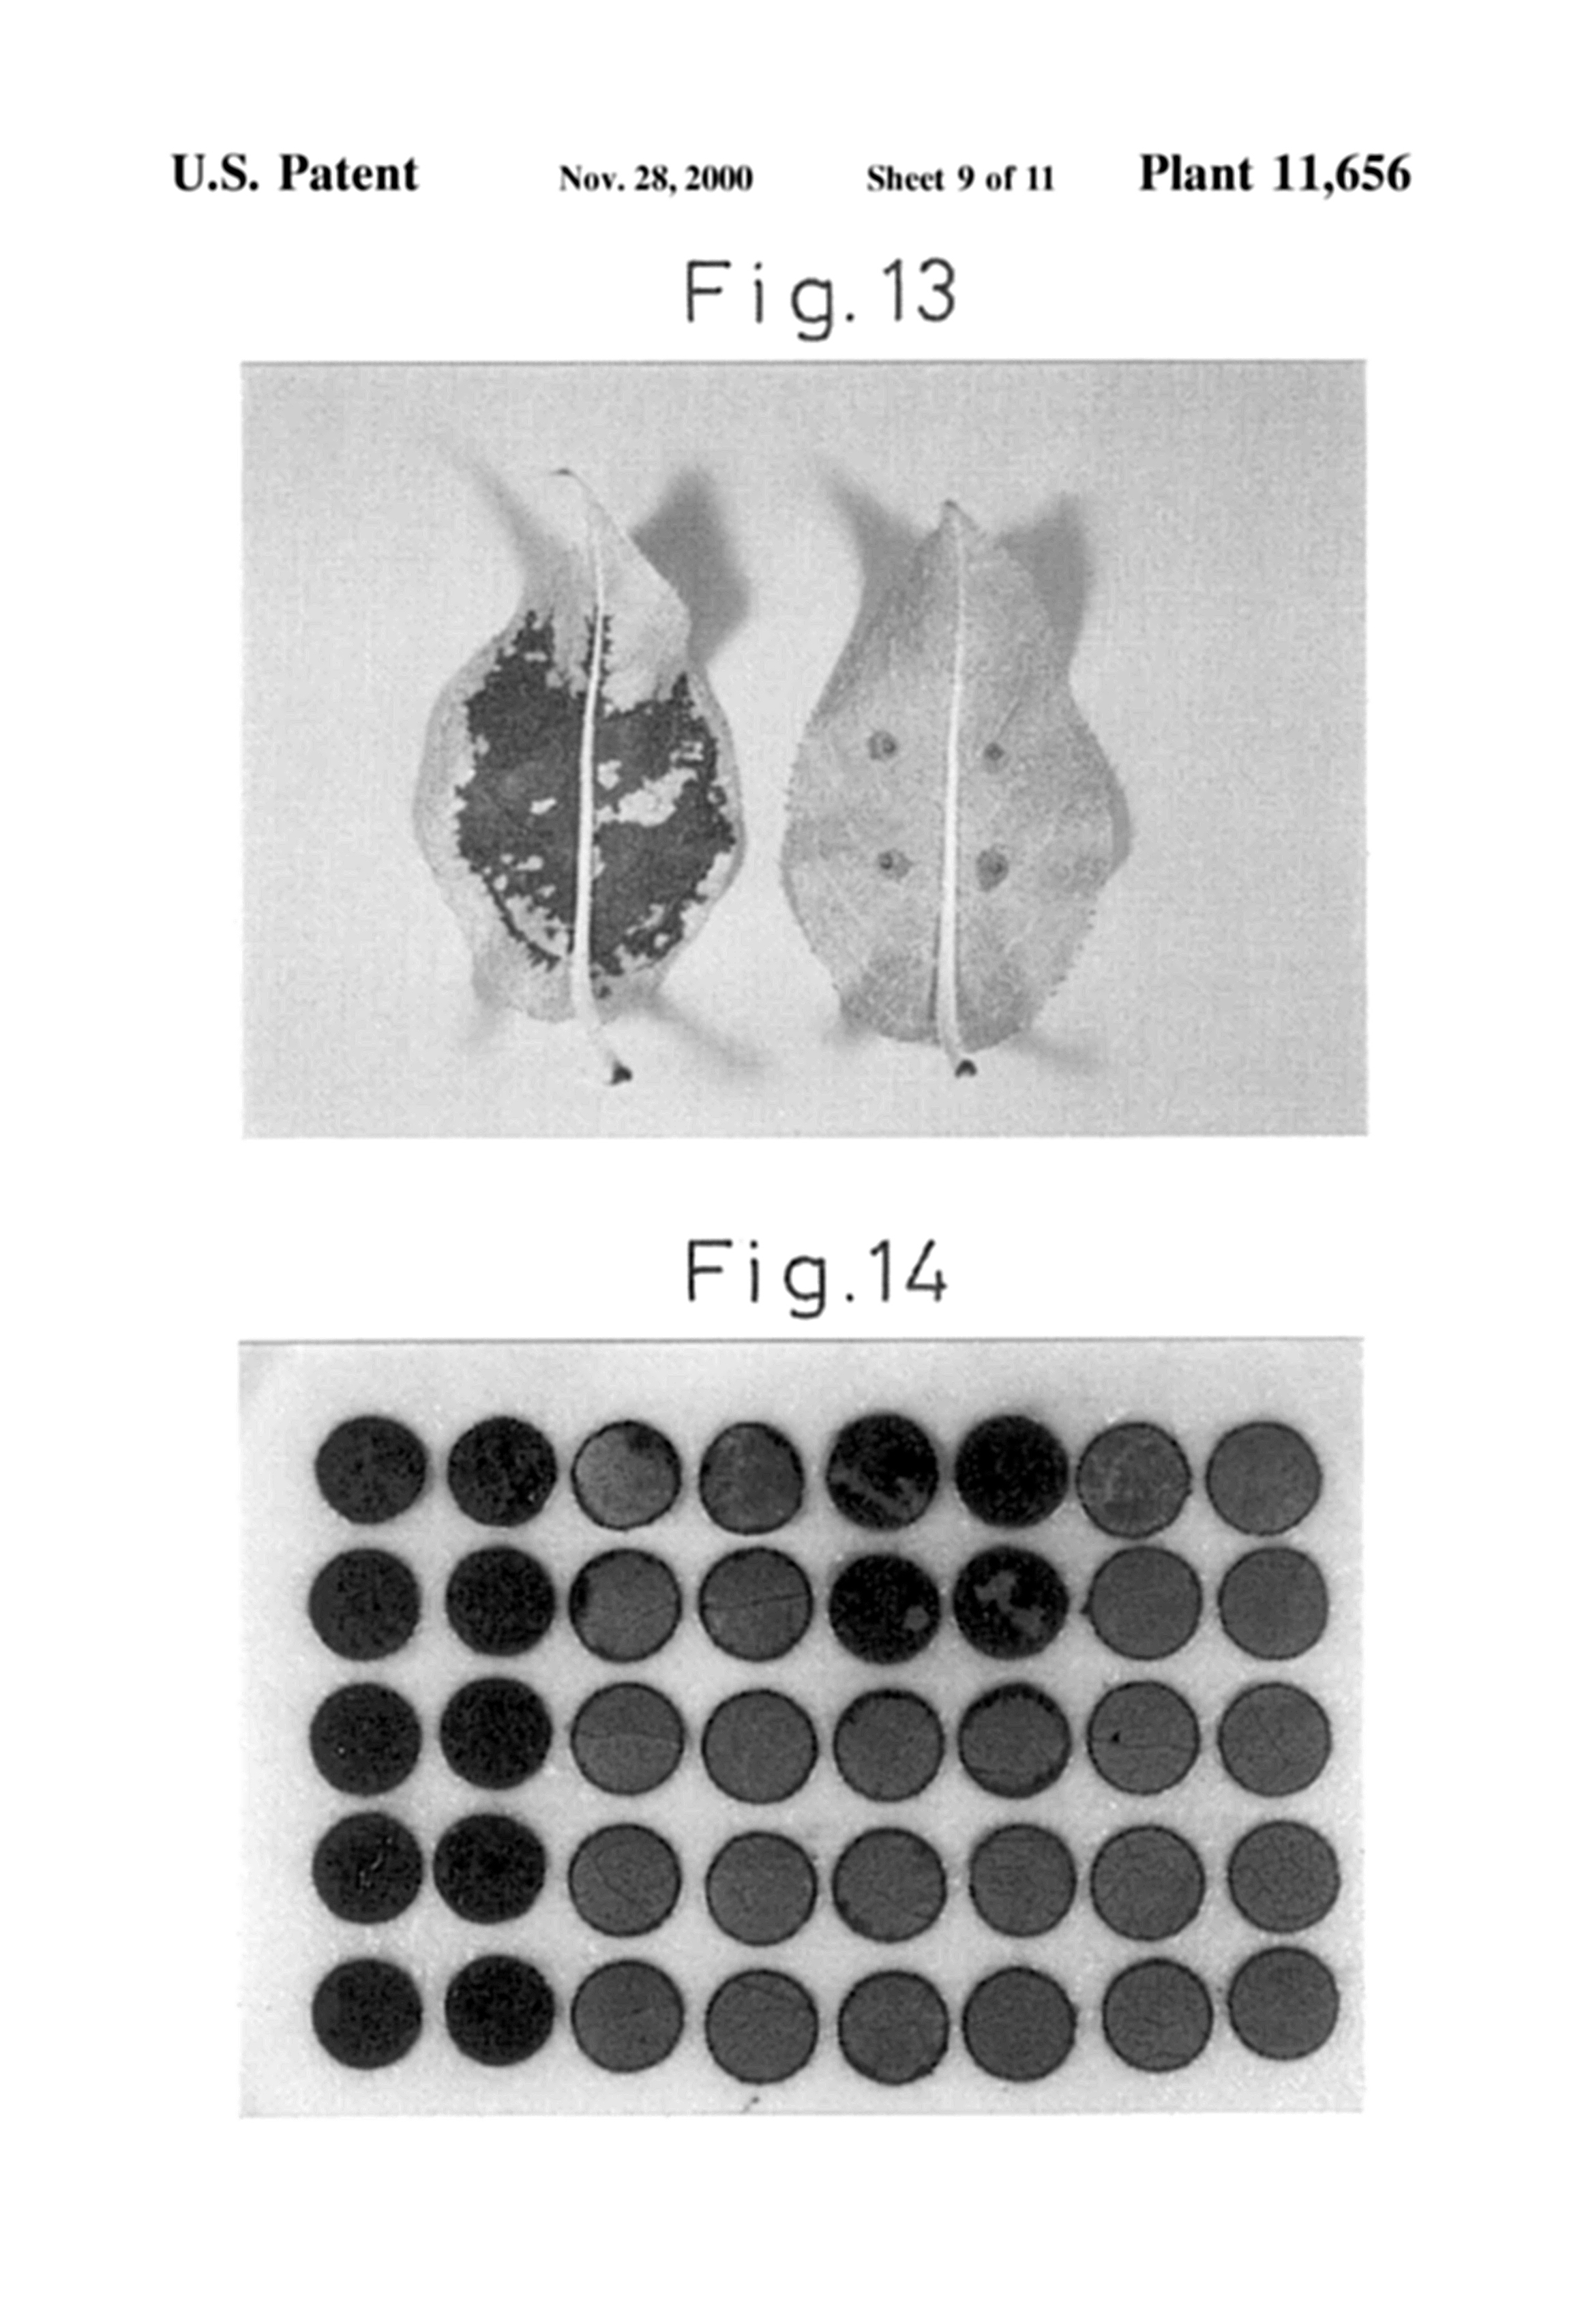 """A blight-resistant mutant cultivar of the Japanese pear tree (Pyrus pyrifolia) developed at the IRB. Images from U.S. patent USPP11656P, Plant 11,656,  """"Japanese pear tree named `Osa Gold`"""" , Nov. 28, 2000"""